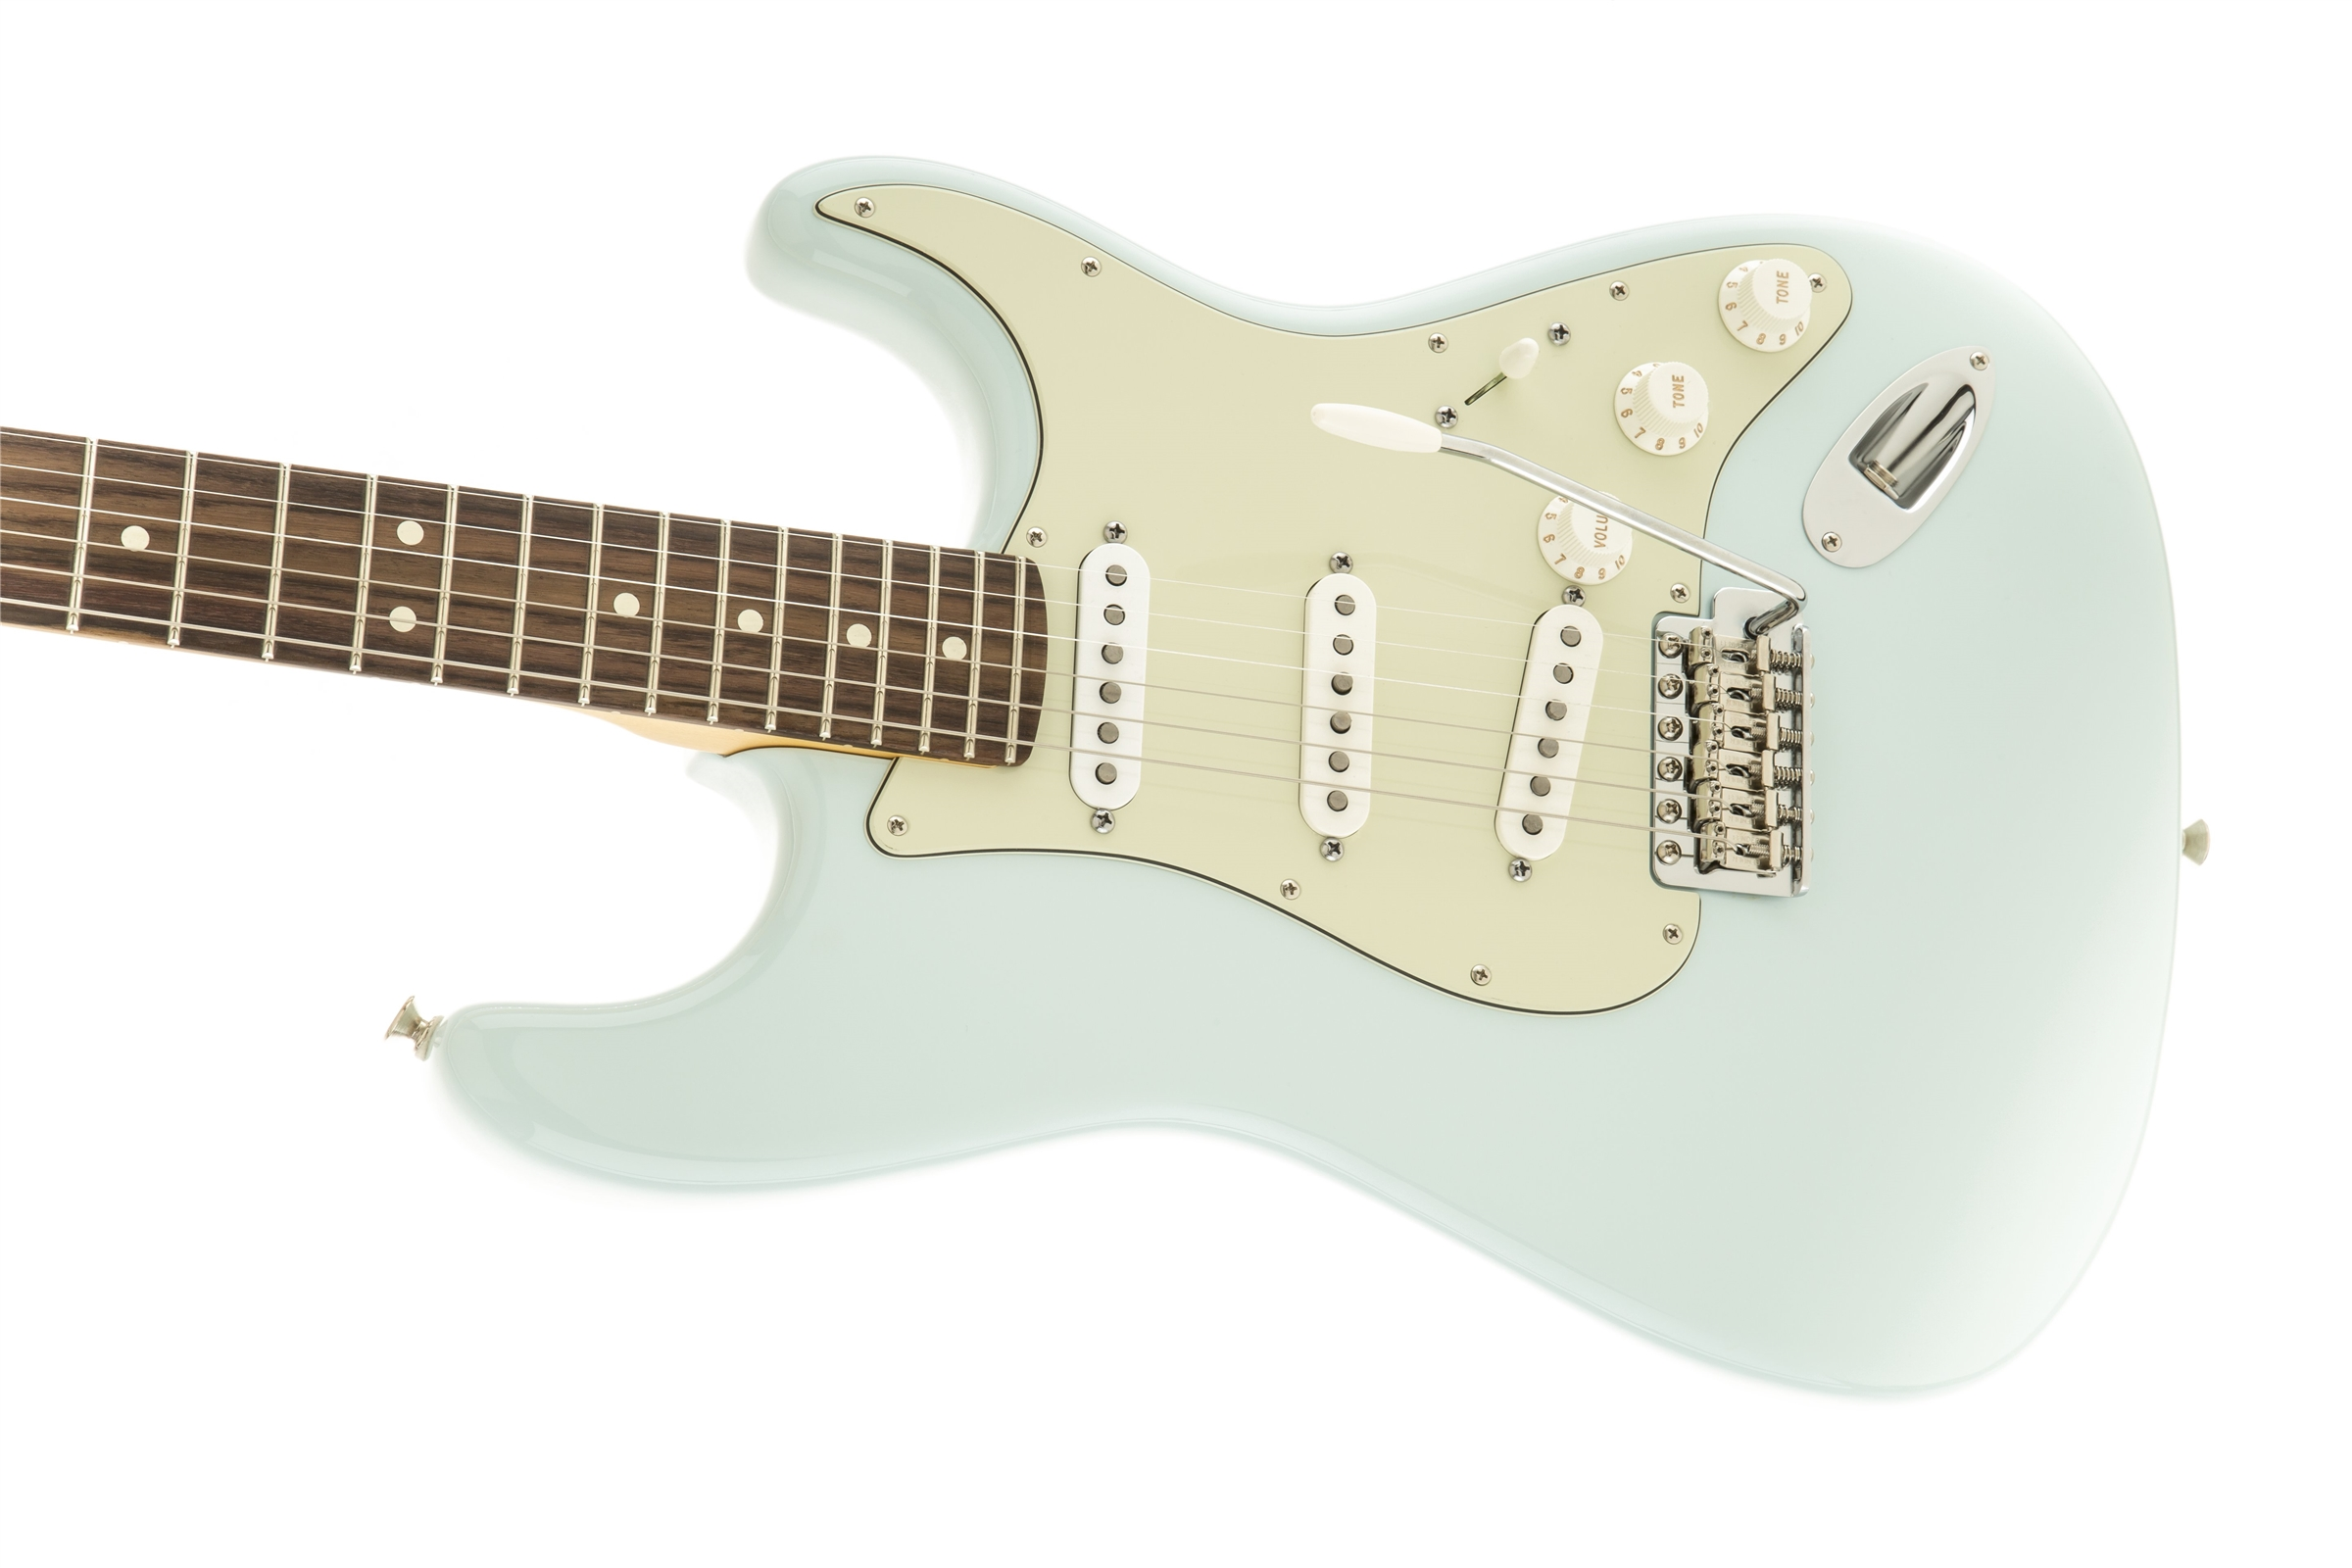 American Special Stratocaster Electric Guitars Strat Bridge Tone Pot Wiring On Guitar Diagram Tap To Expand